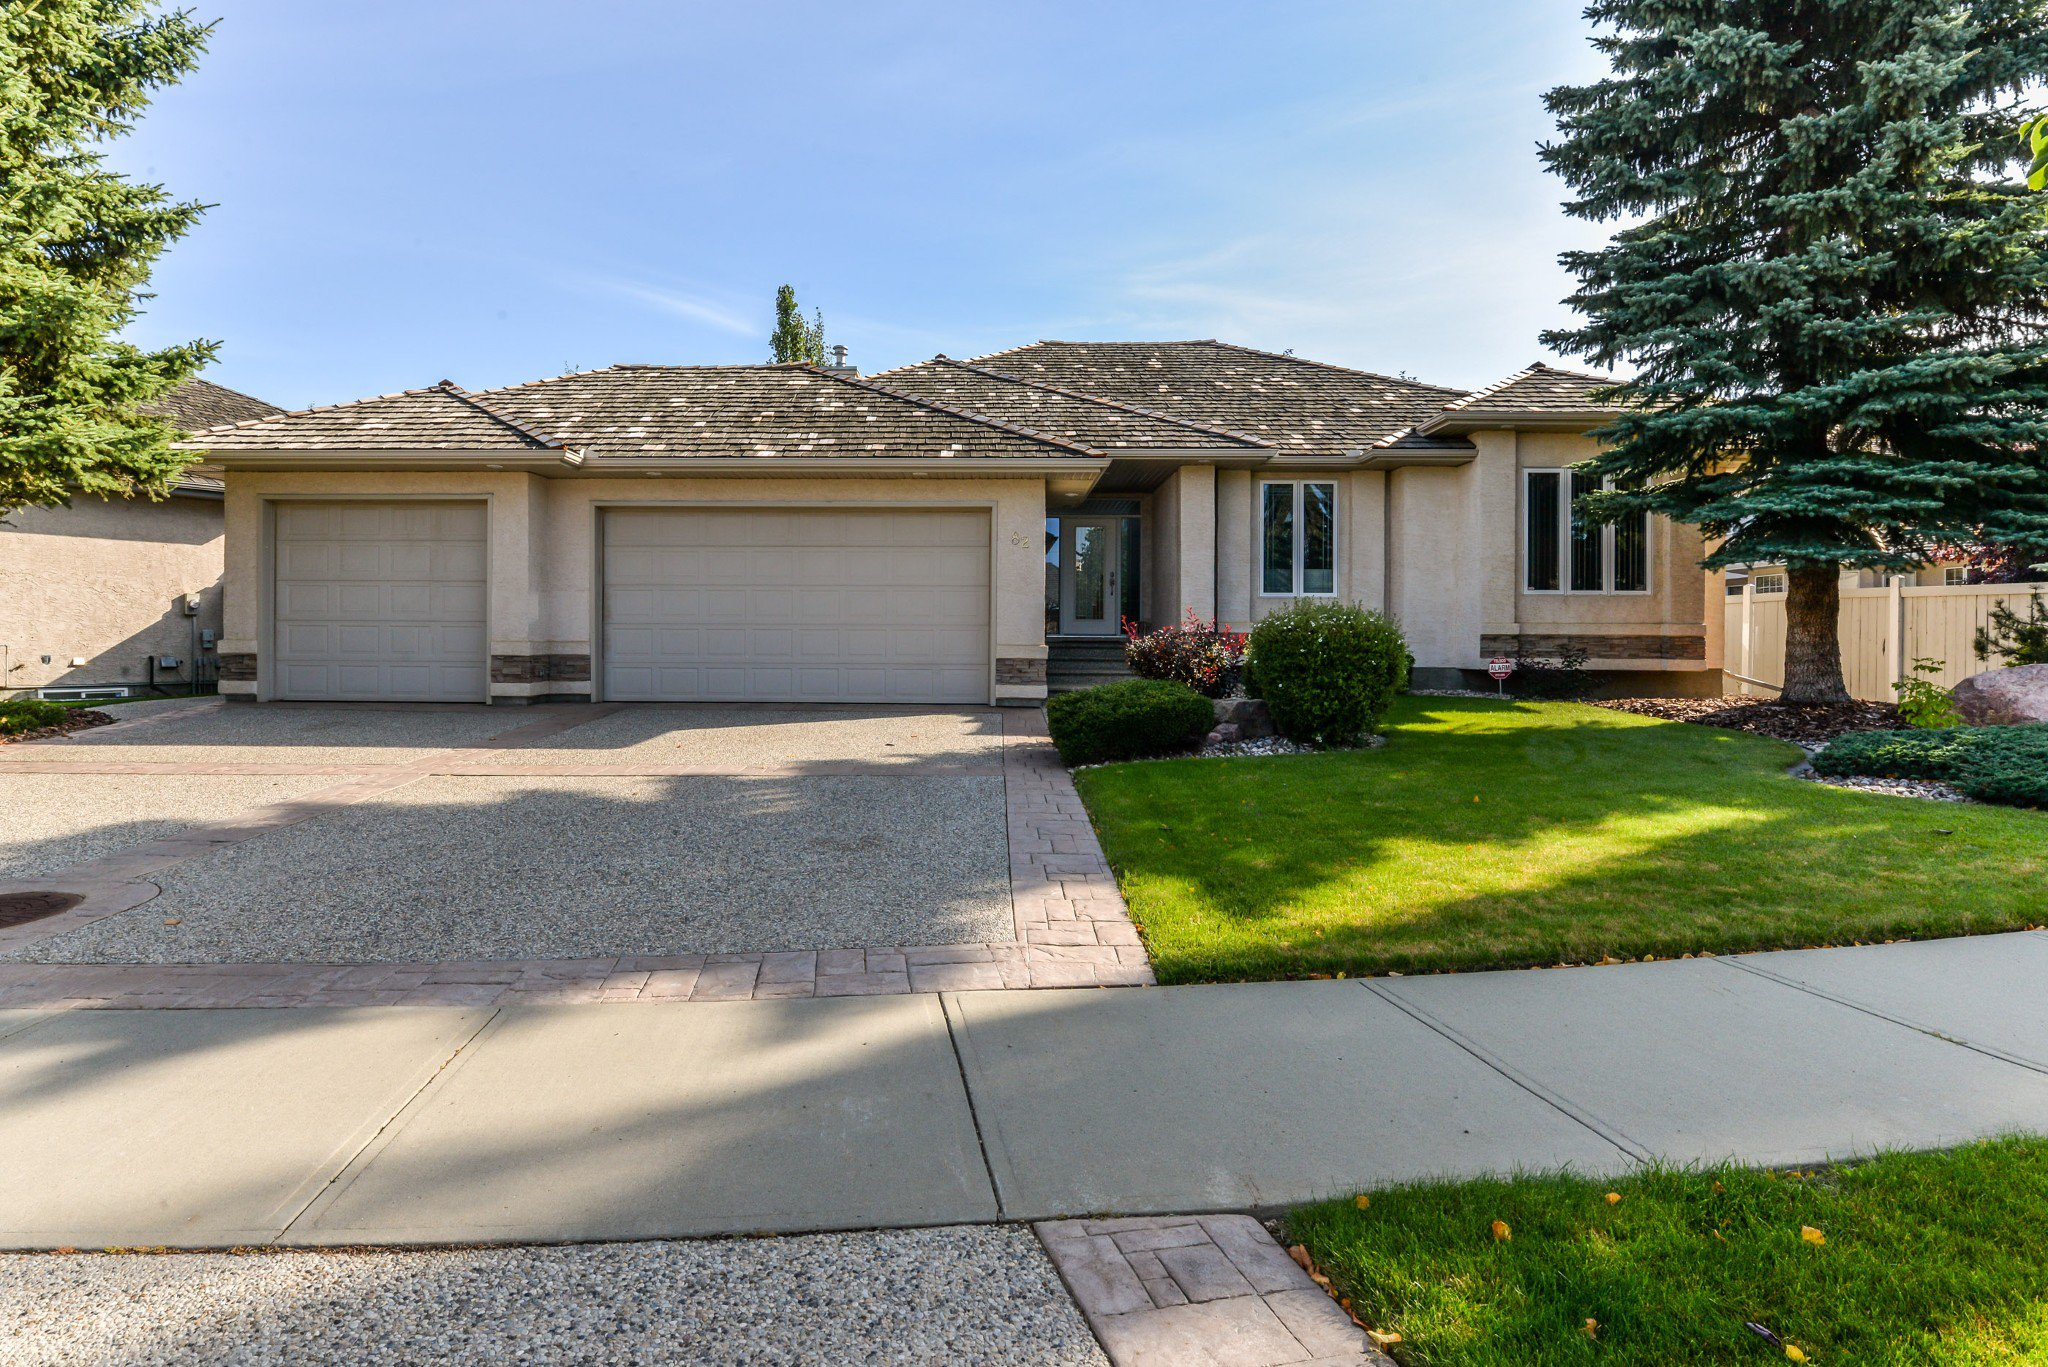 Main Photo: 82 Kingsbury Crescent NW in St. Albert: Kingswood House for sale